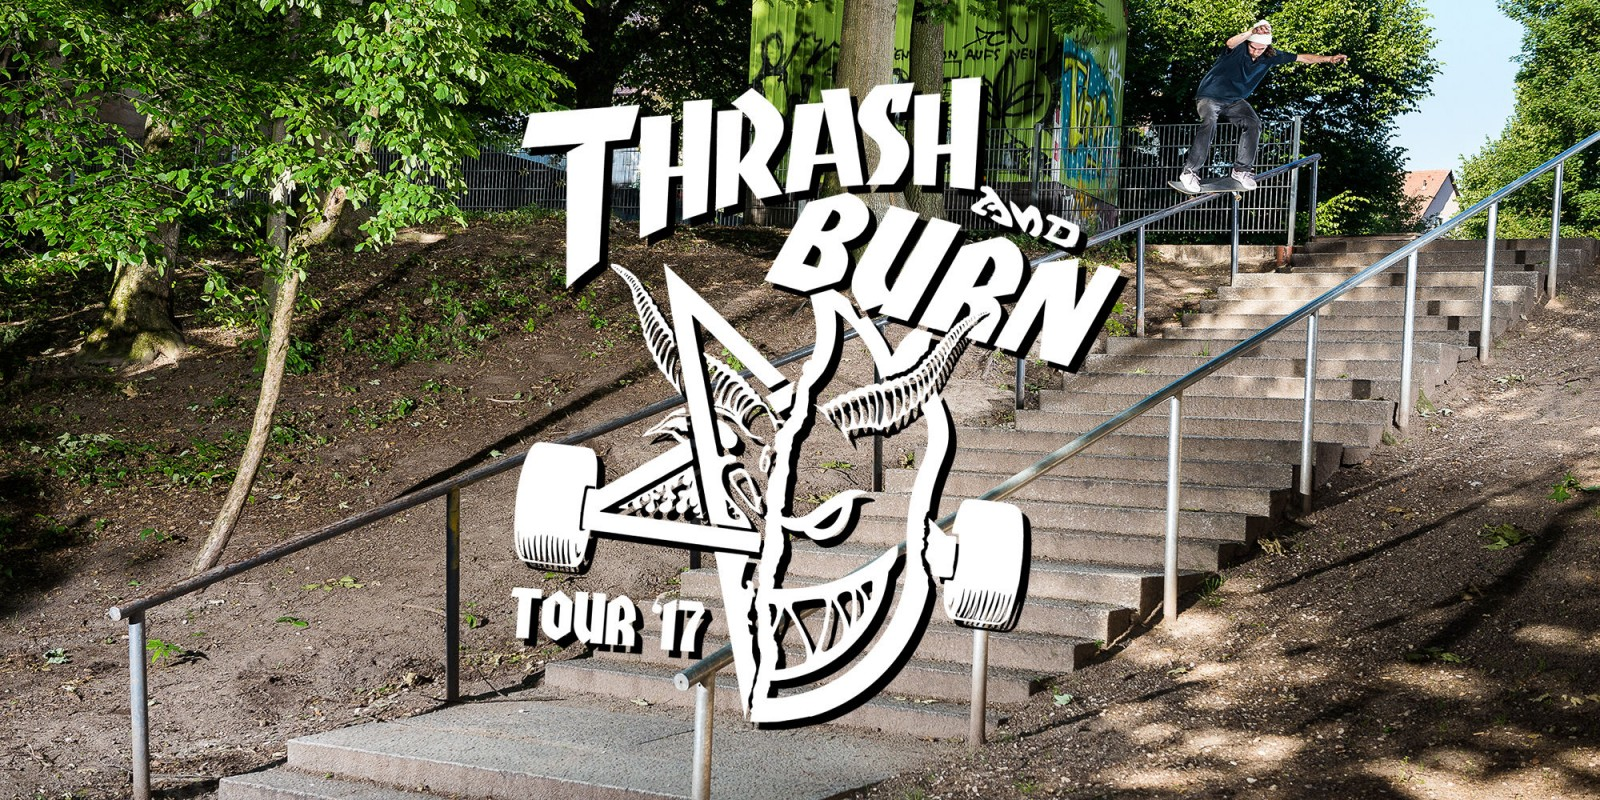 2017 Skate Thrasher Burn Hero Image